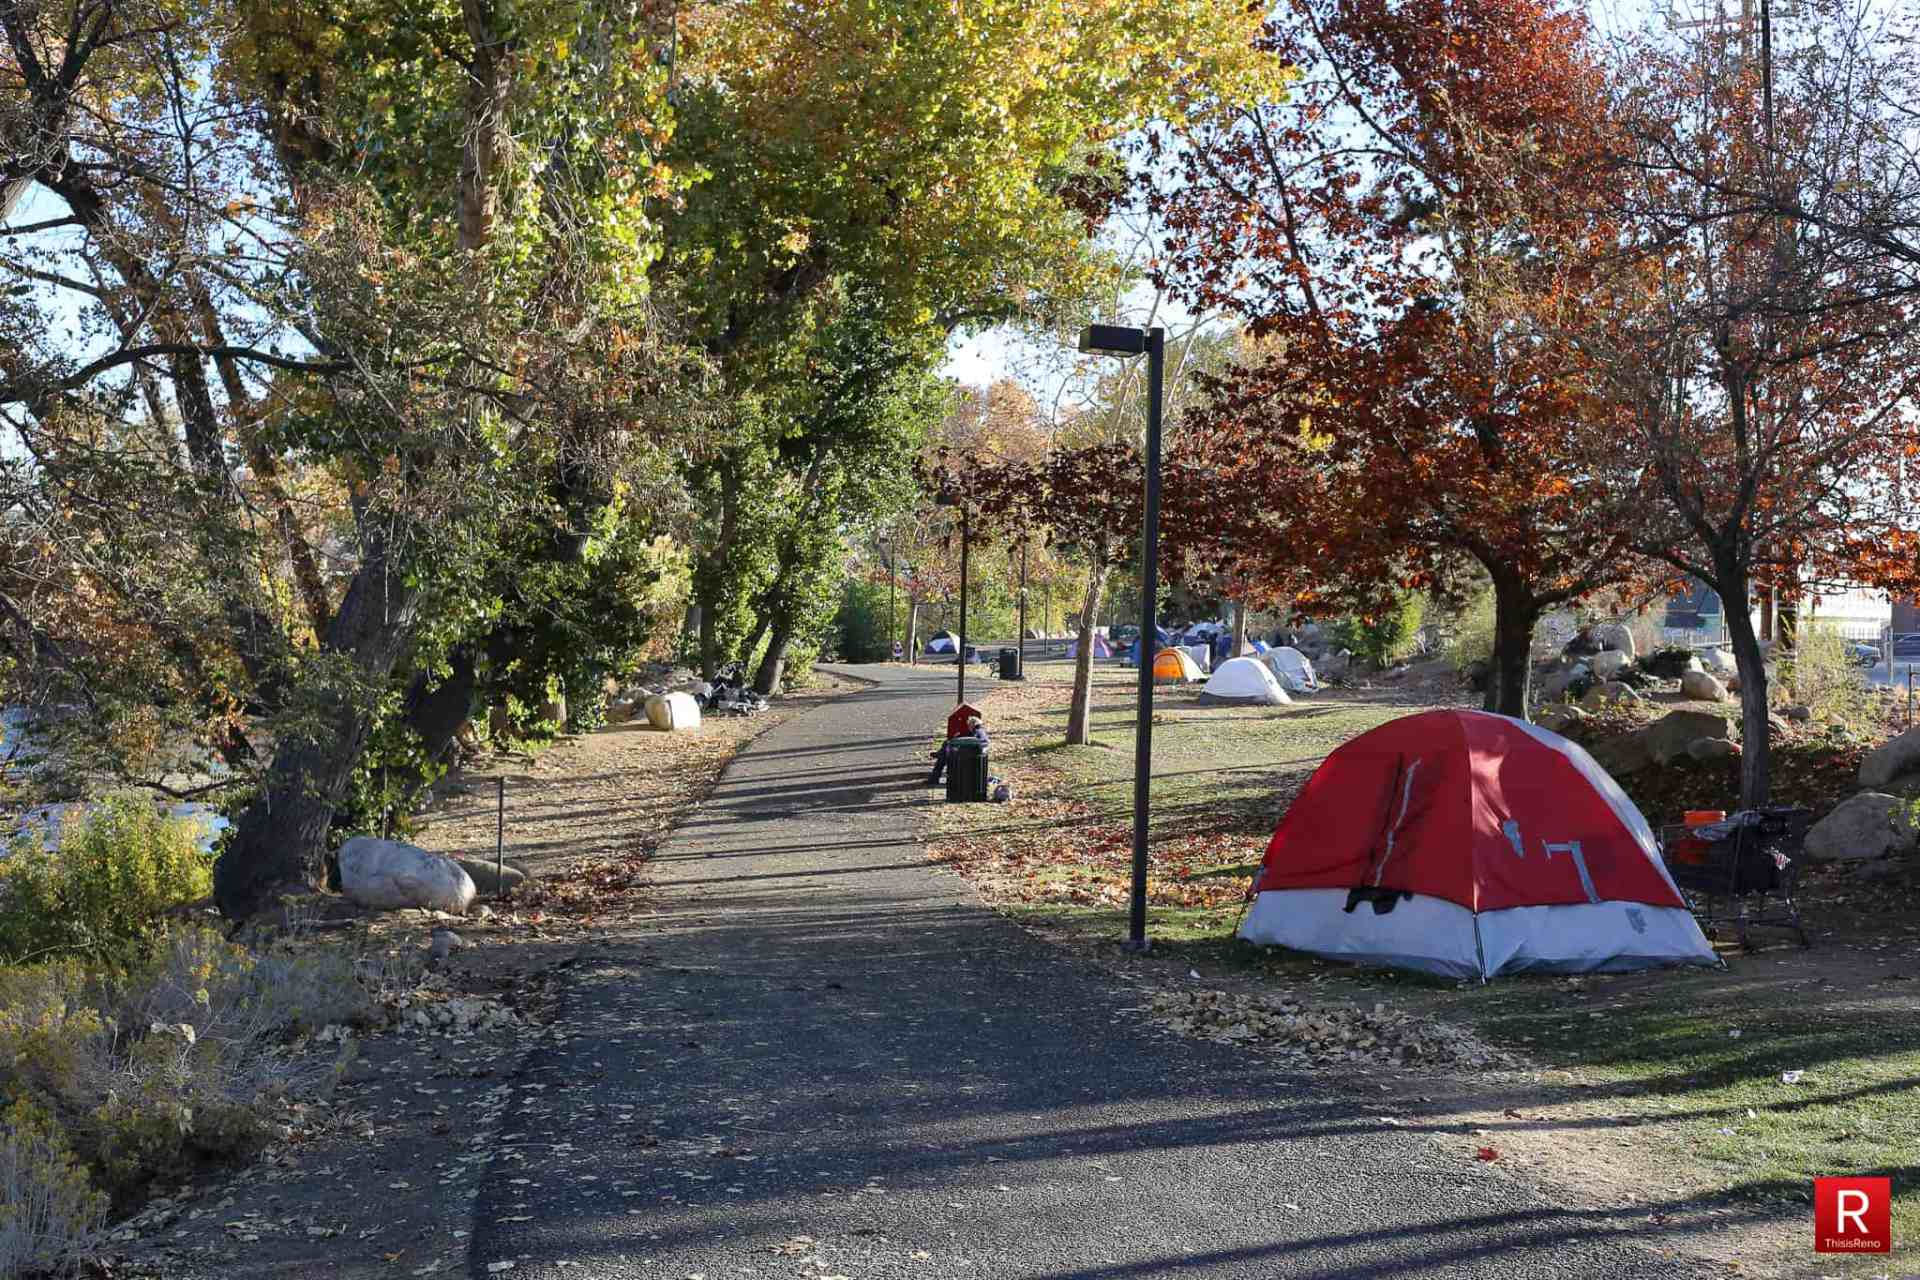 Homelessness in Reno, Nevada. Campers take over city park. Image: Bob Conrad / This Is Reno.